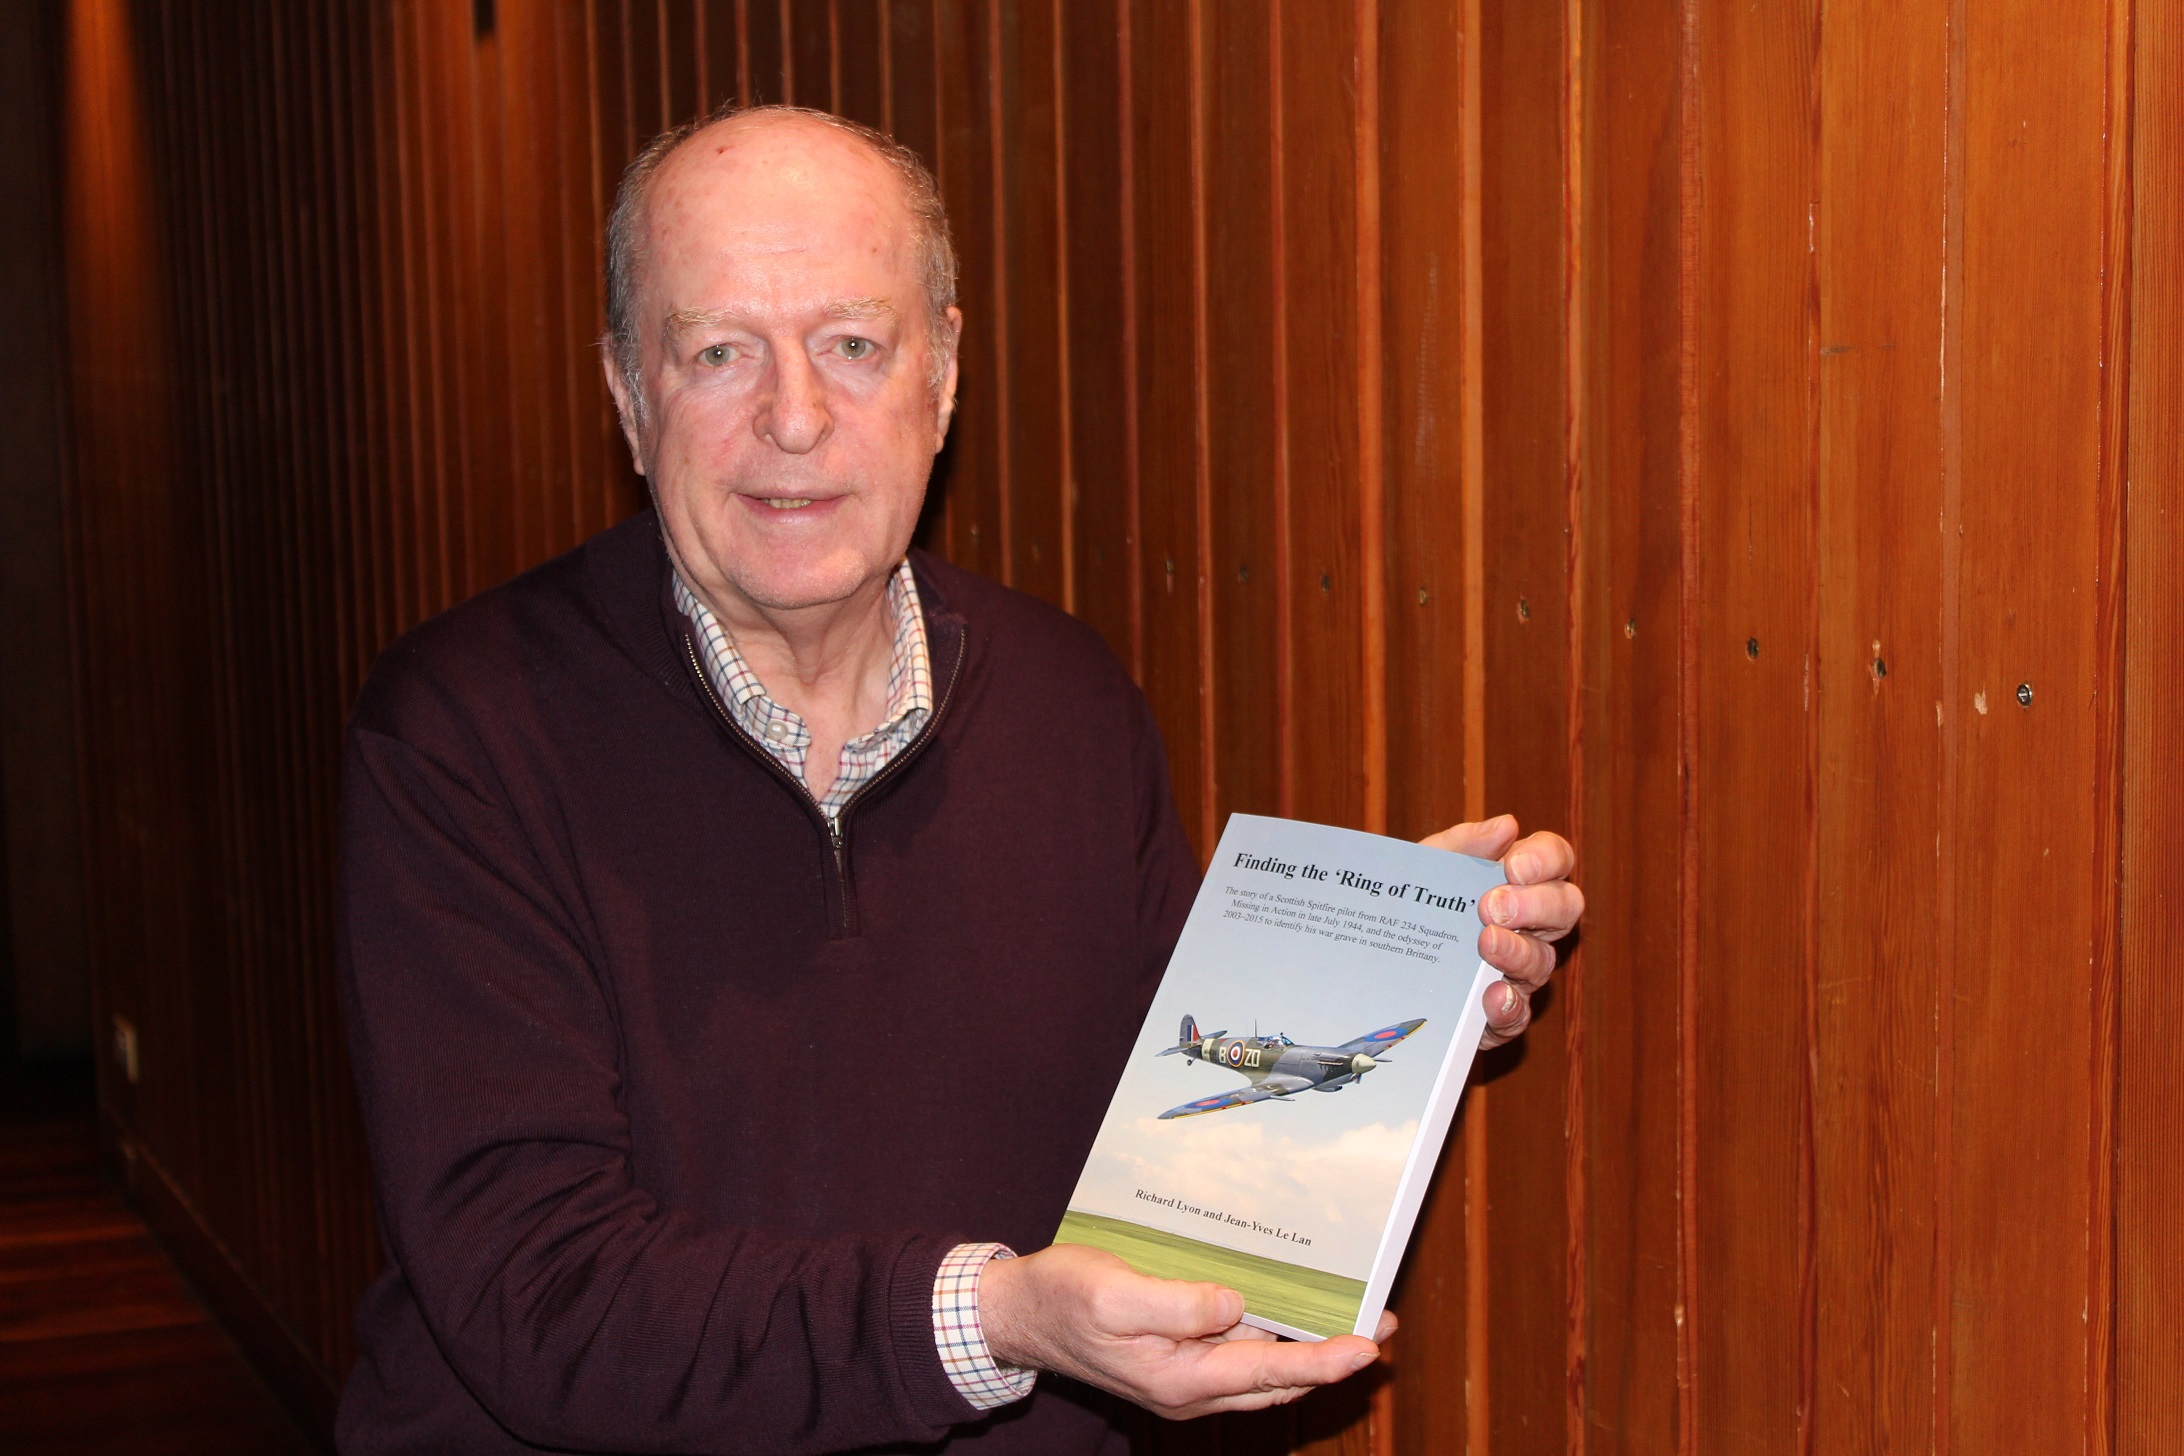 Richard Lyon with his book